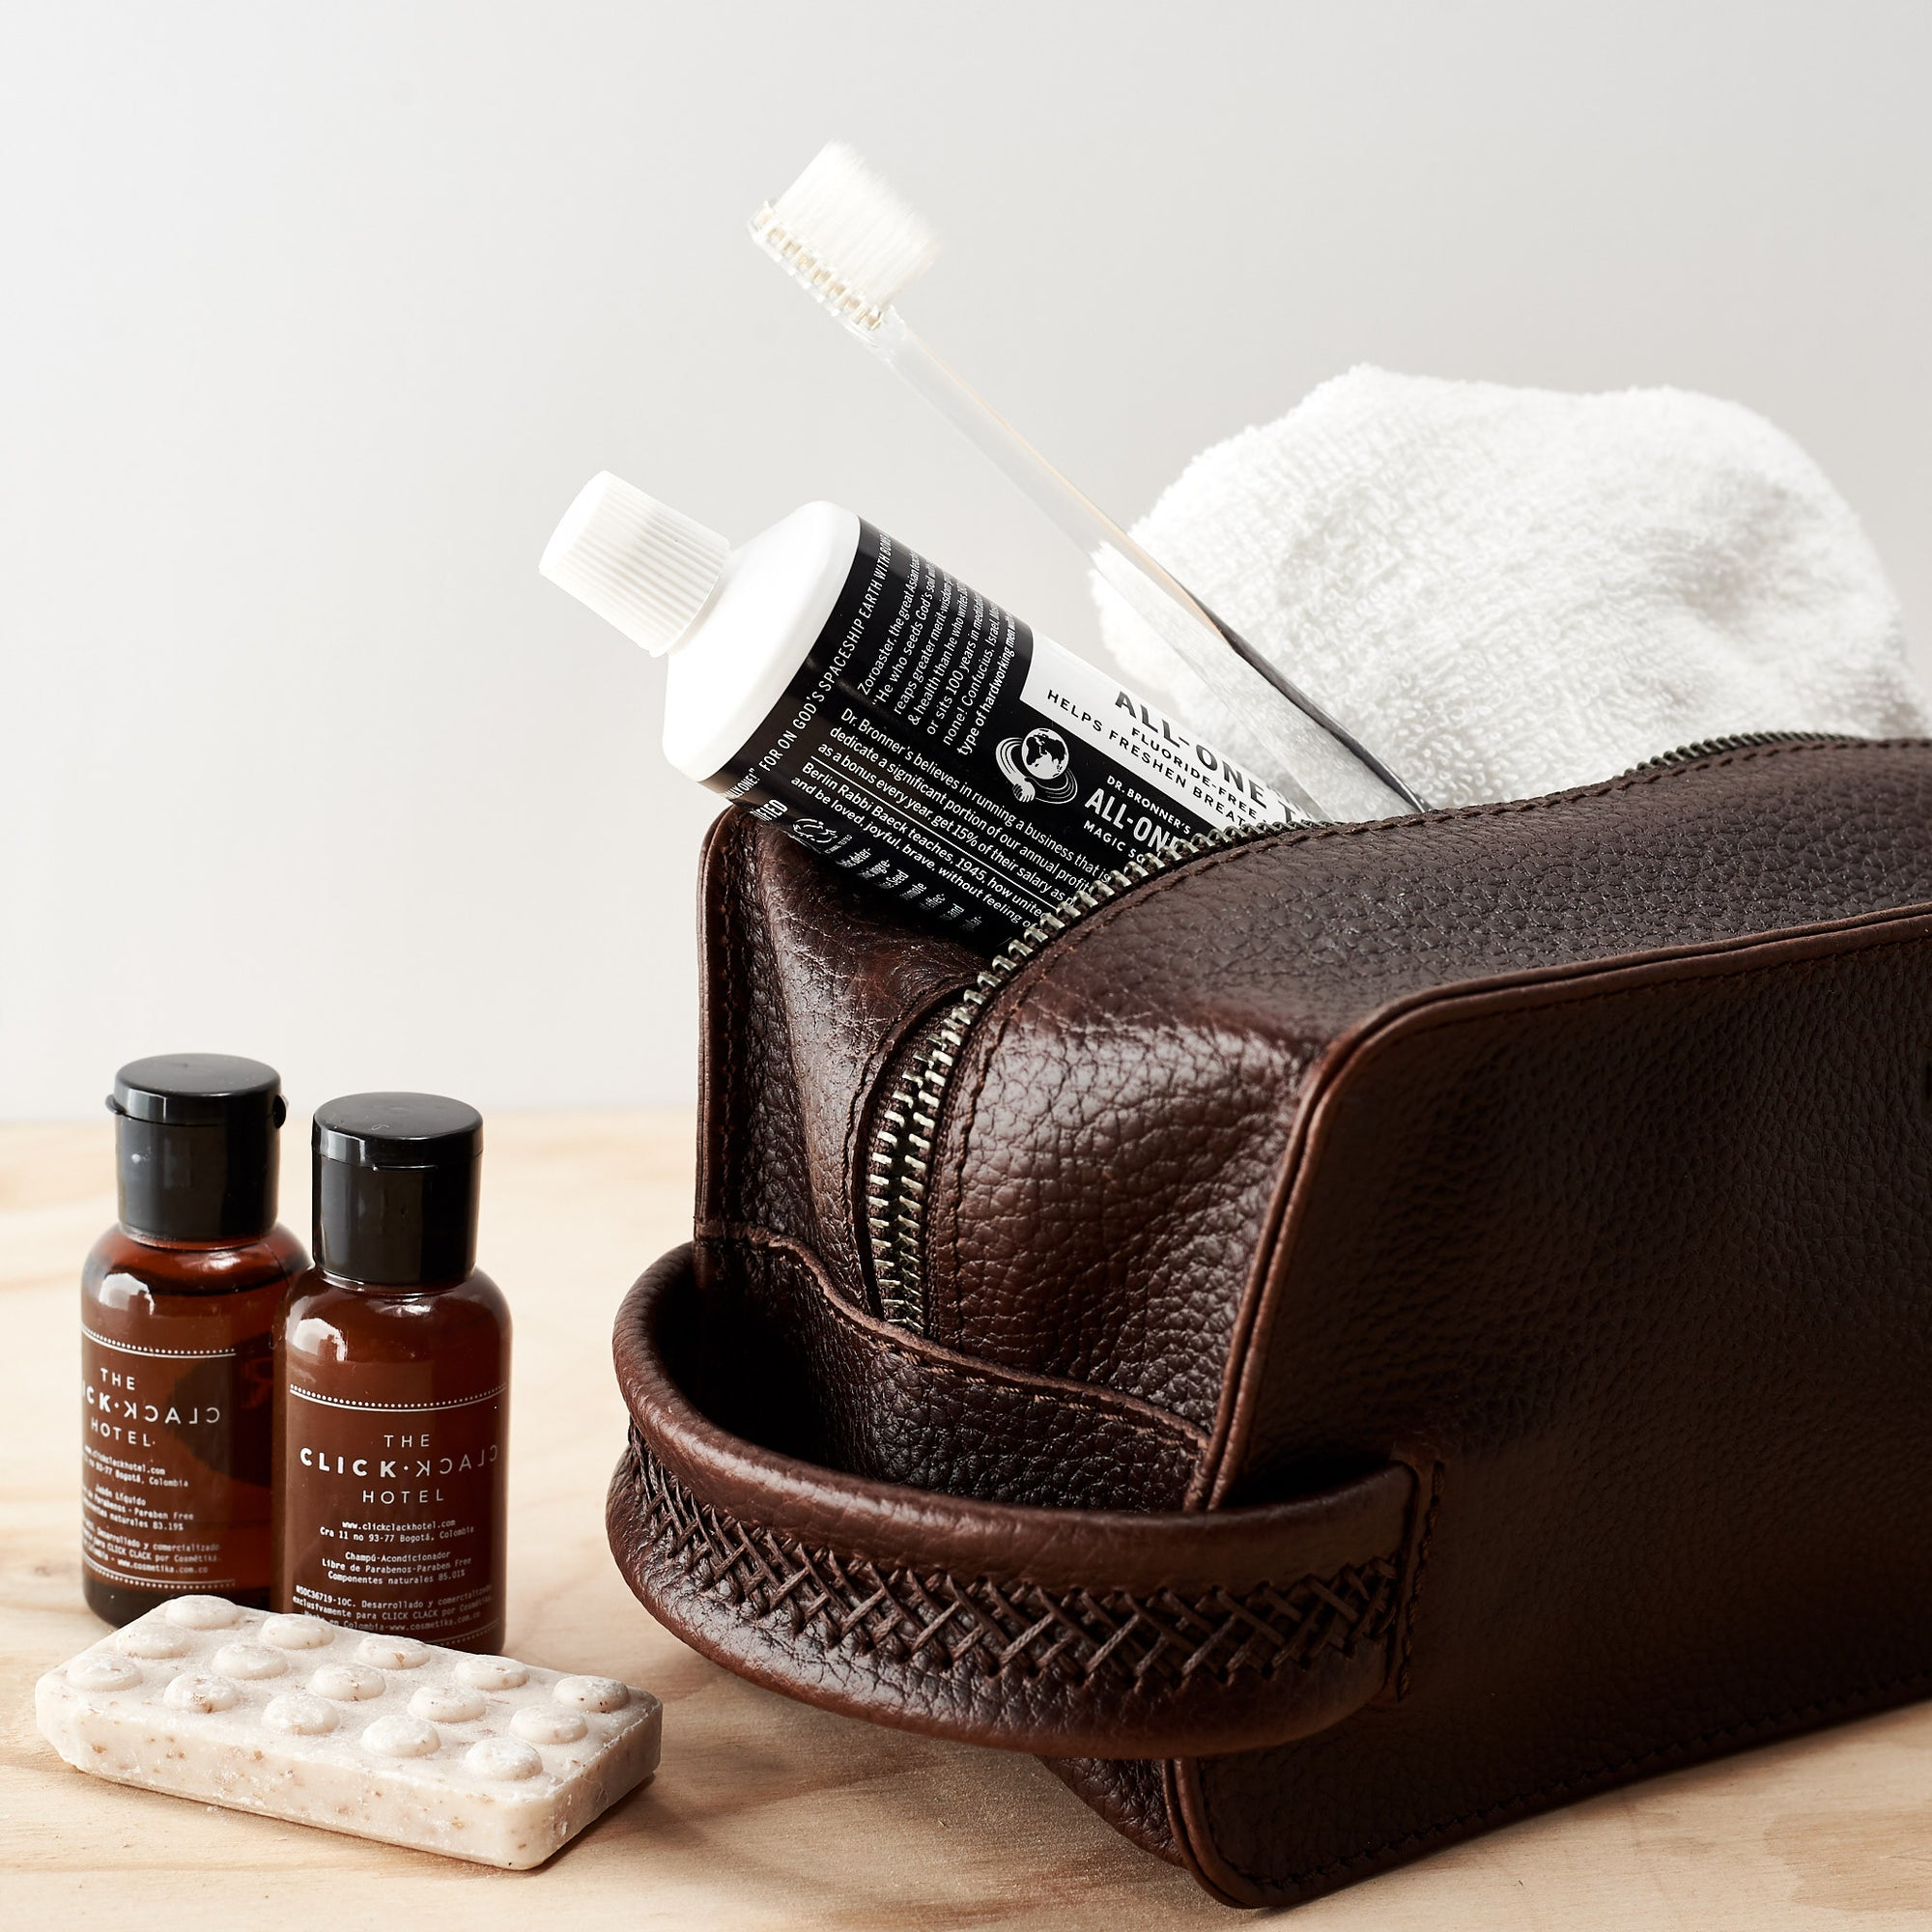 Leather Toiletries Dopp Kits for Men